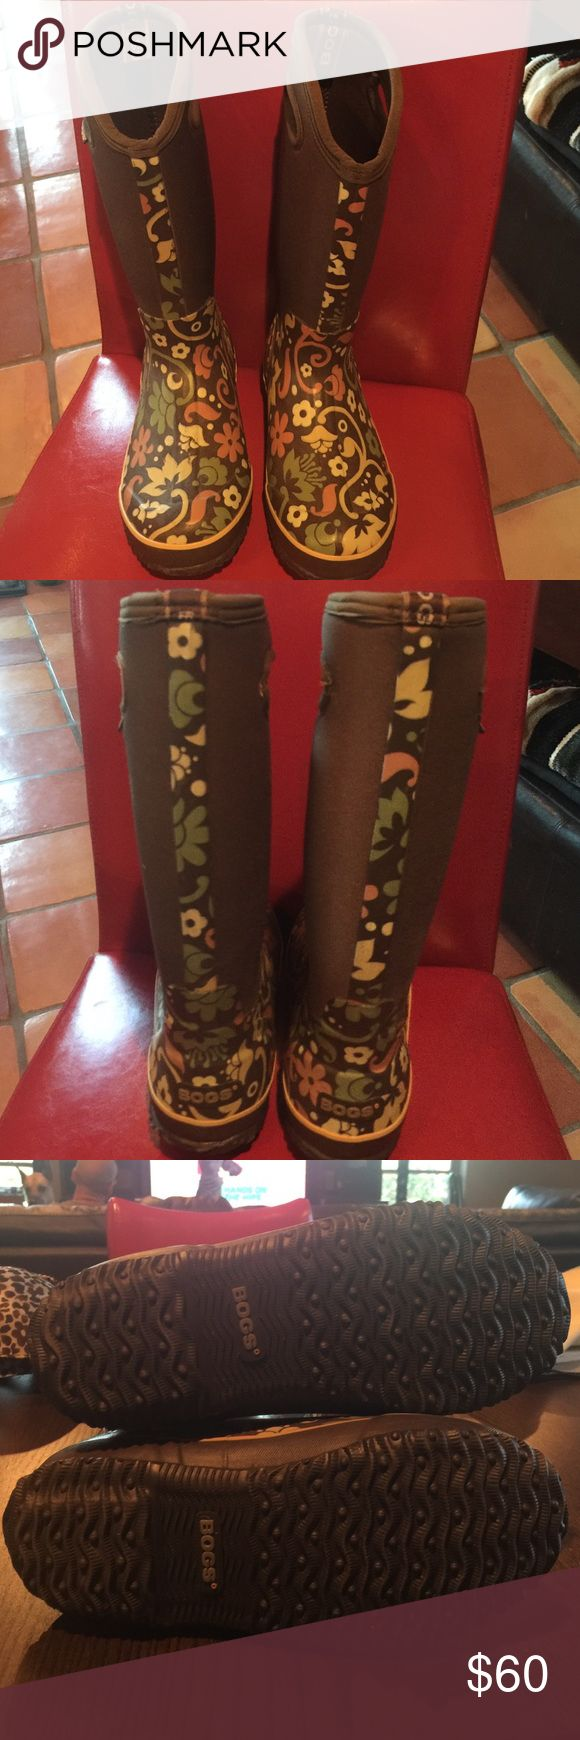 Bogs boots Women's Classic High Corsage Waterproof boots. Brown boots w/green, yellow & orange floral print. Like new!! Bogs Shoes Winter & Rain Boots